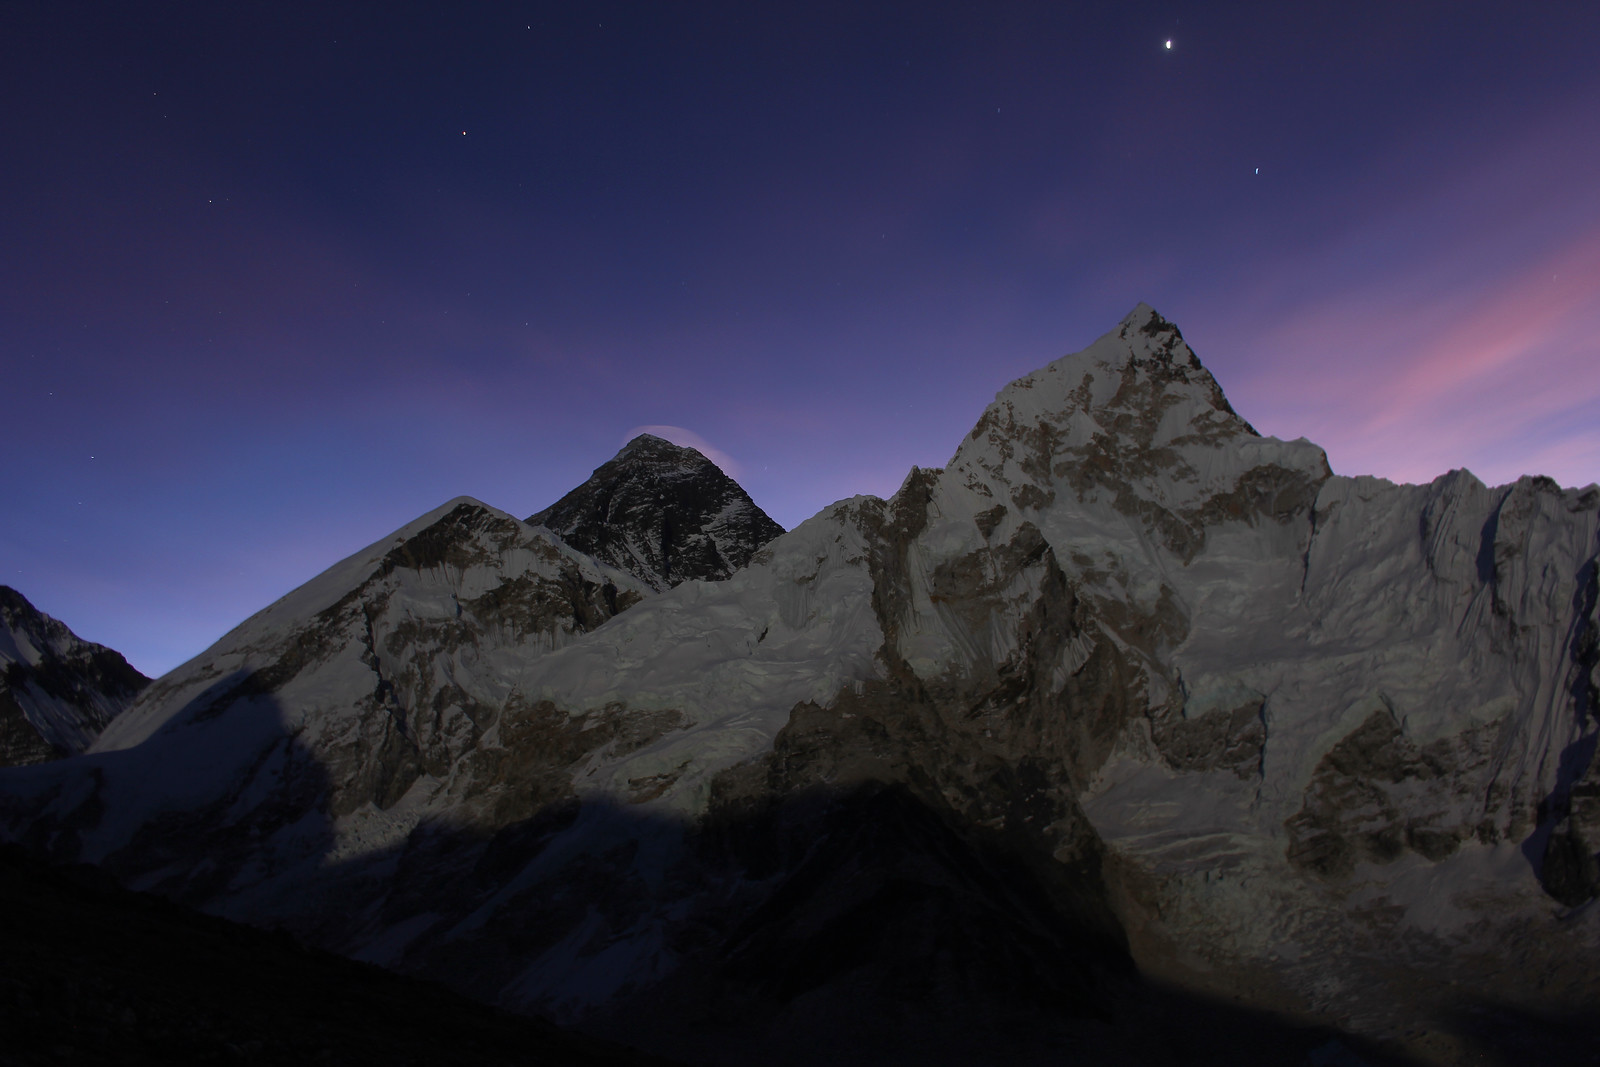 Mount Everest before dawn